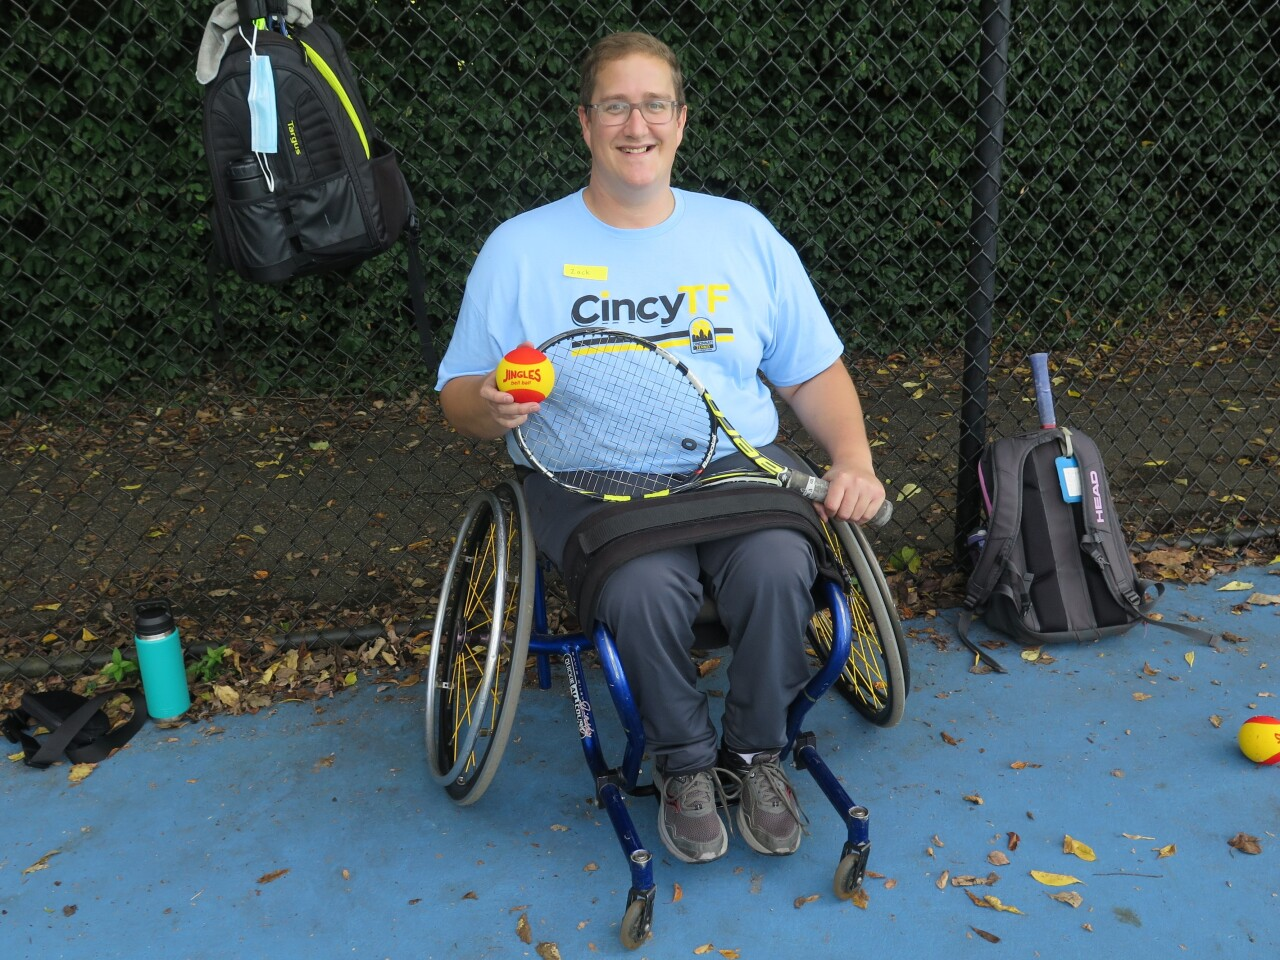 Zack Sikora is smiling and holding a tennis ball and tennis racquet in this photo. He's wearing glasses, a blue Cincinnati Tennis Foundation t-shirt and dark trousers, and he's seated in a wheelchair.